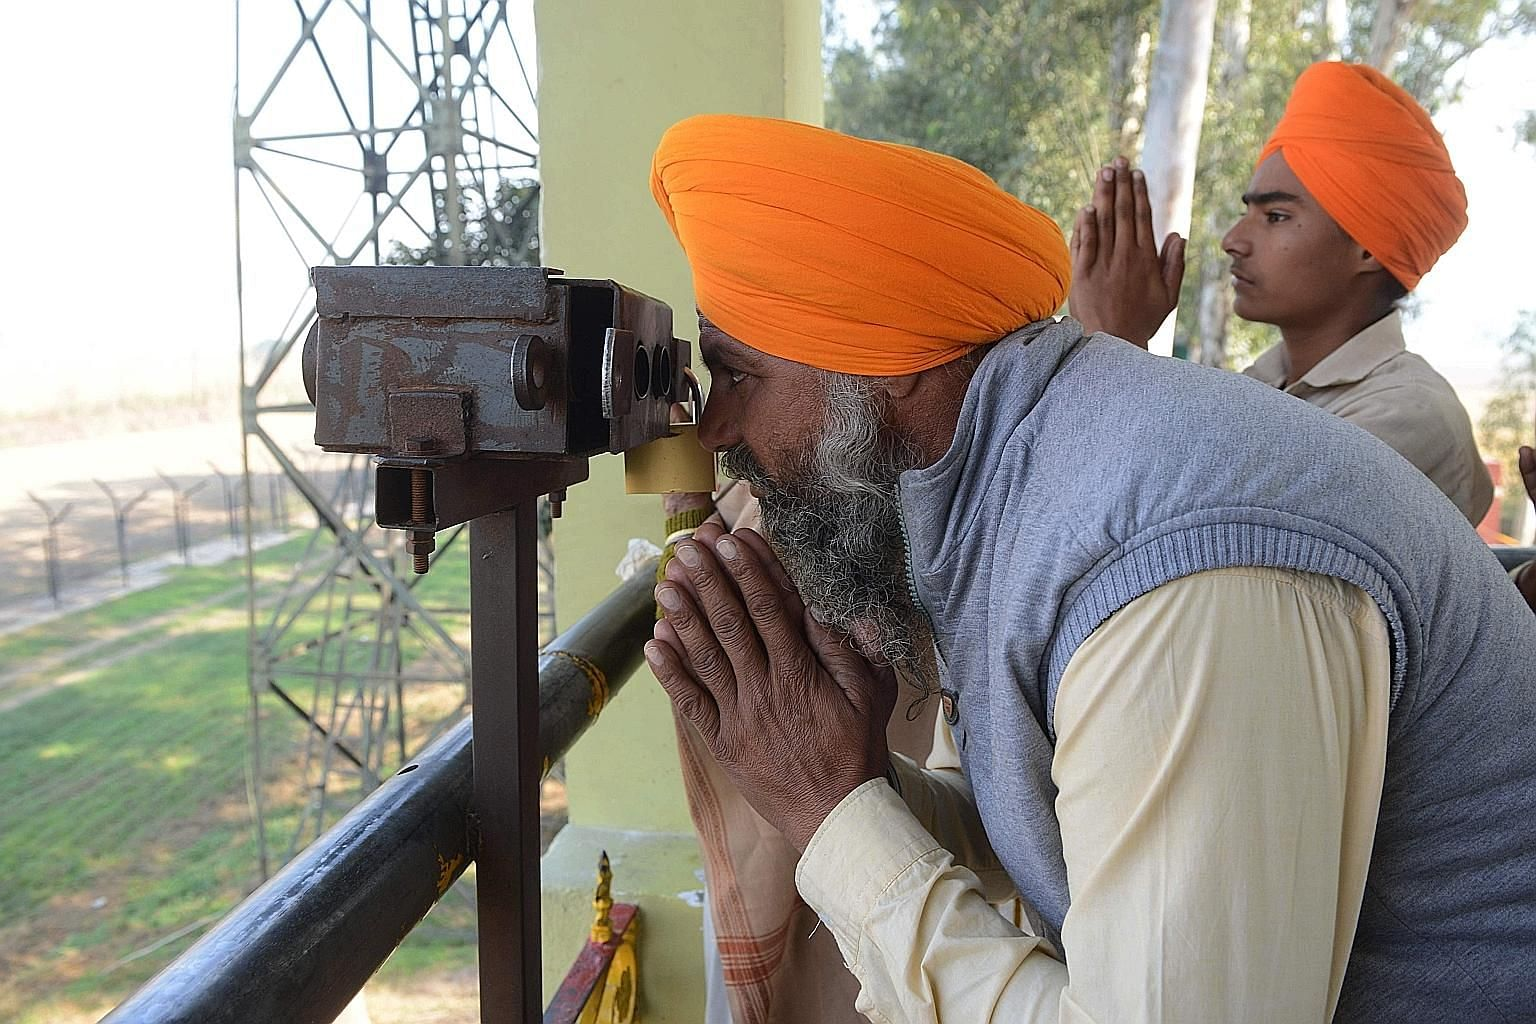 An Indian Sikh devotee looking through a pair of binoculars towards the Gurdwara Darbar Sahib in Kartarpur, Pakistan, from the Indian side at Dera Baba Nanak, on the outskirts of Amritsar, on Sunday.